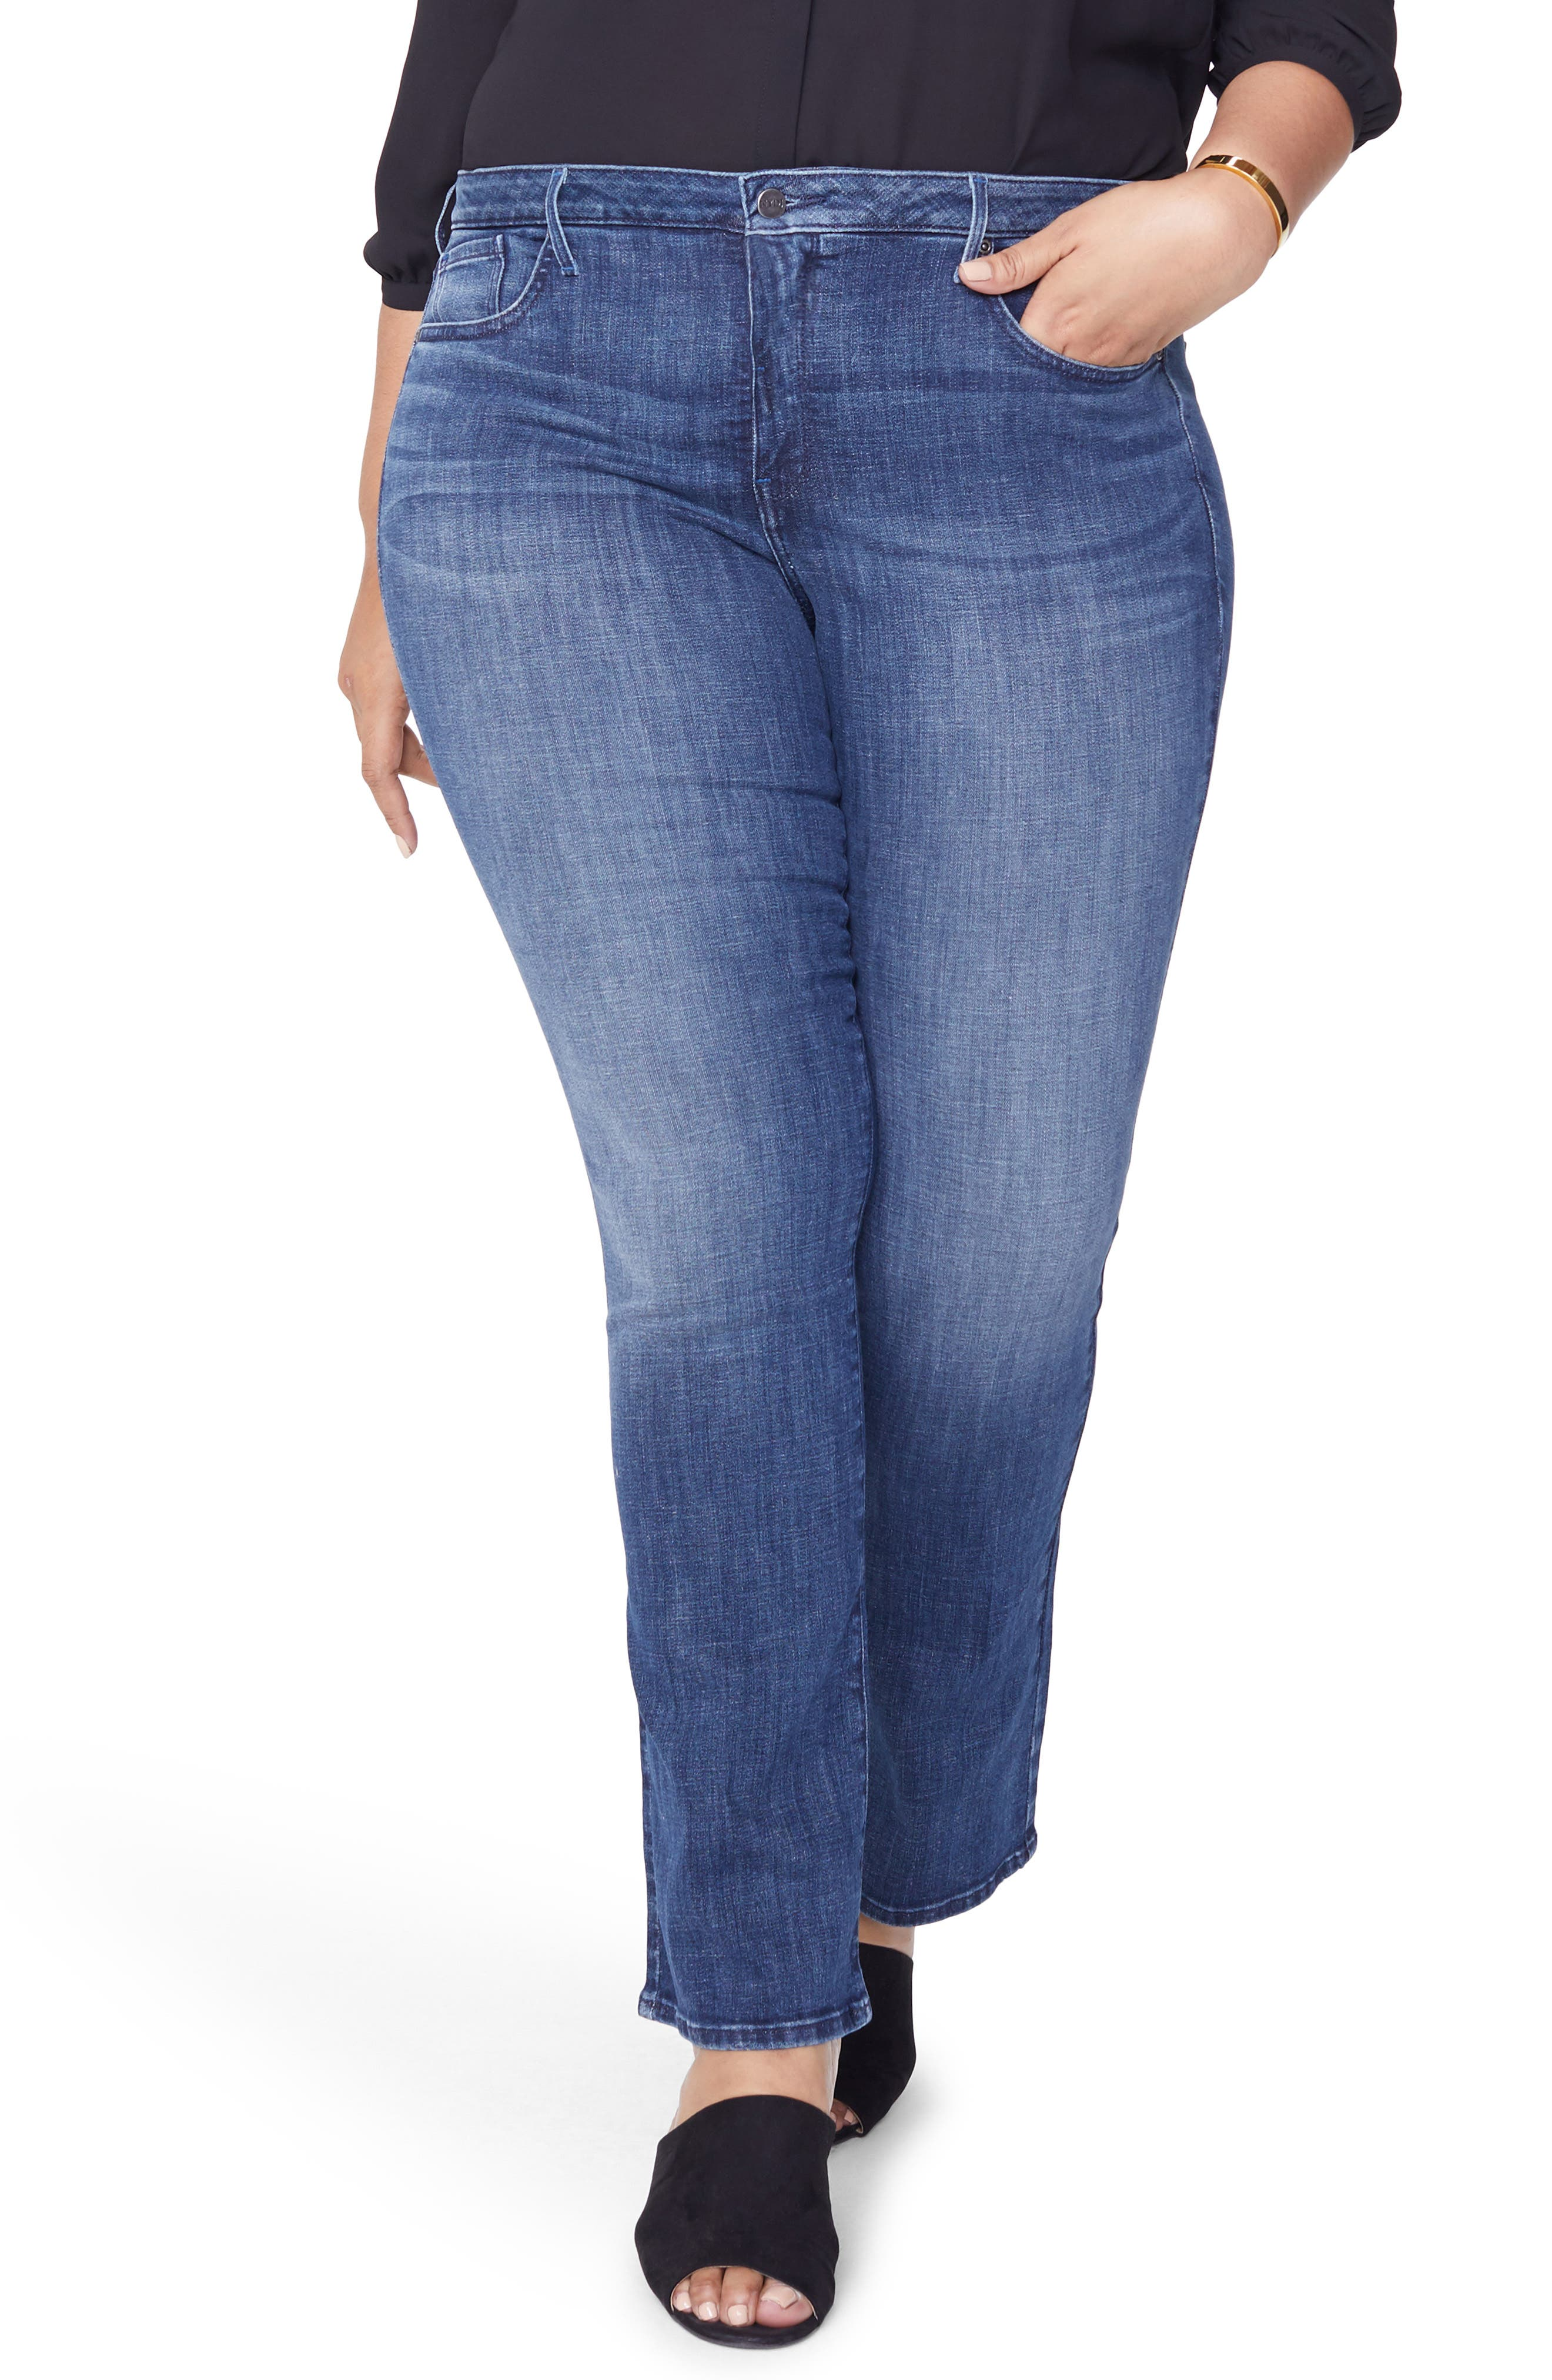 Barbara Bootcut Jeans,                         Main,                         color, LUPINE